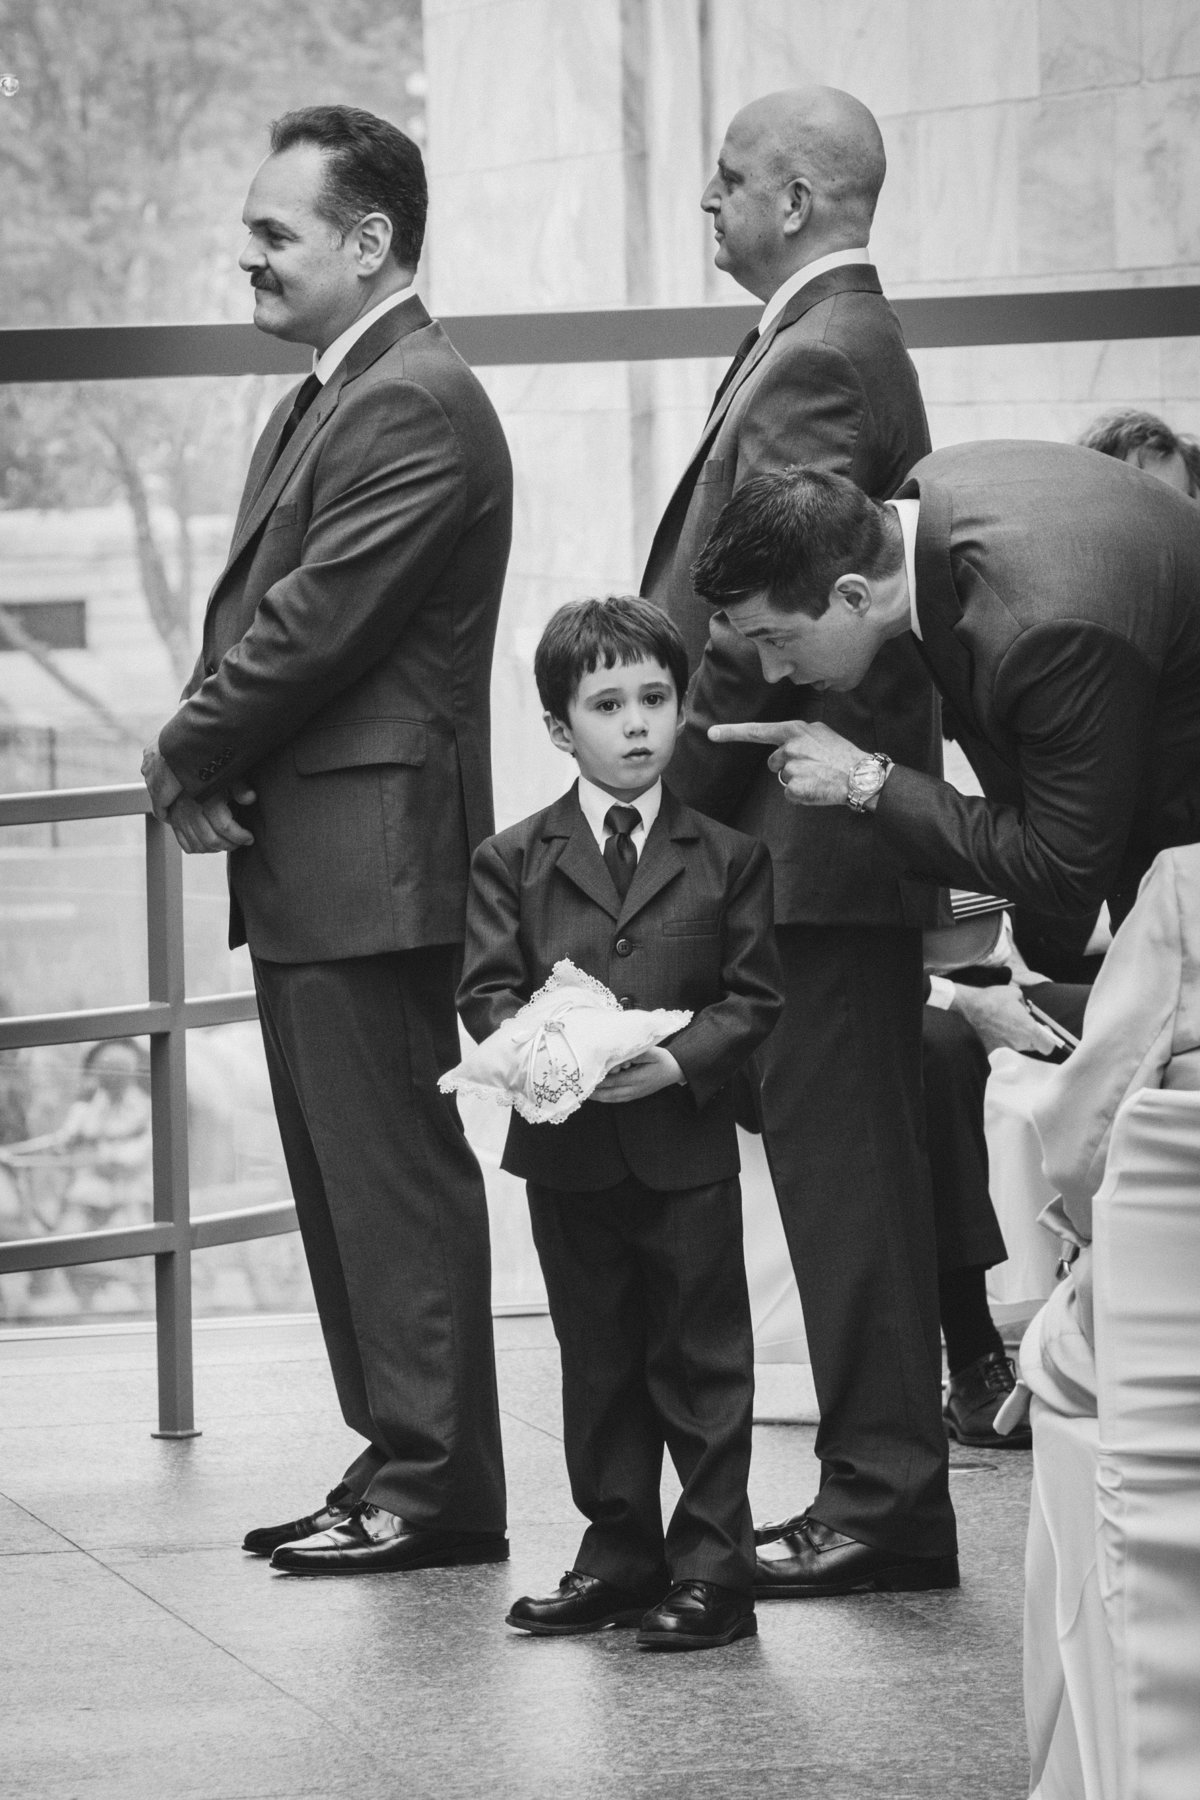 Kid getting in trouble during ceremony